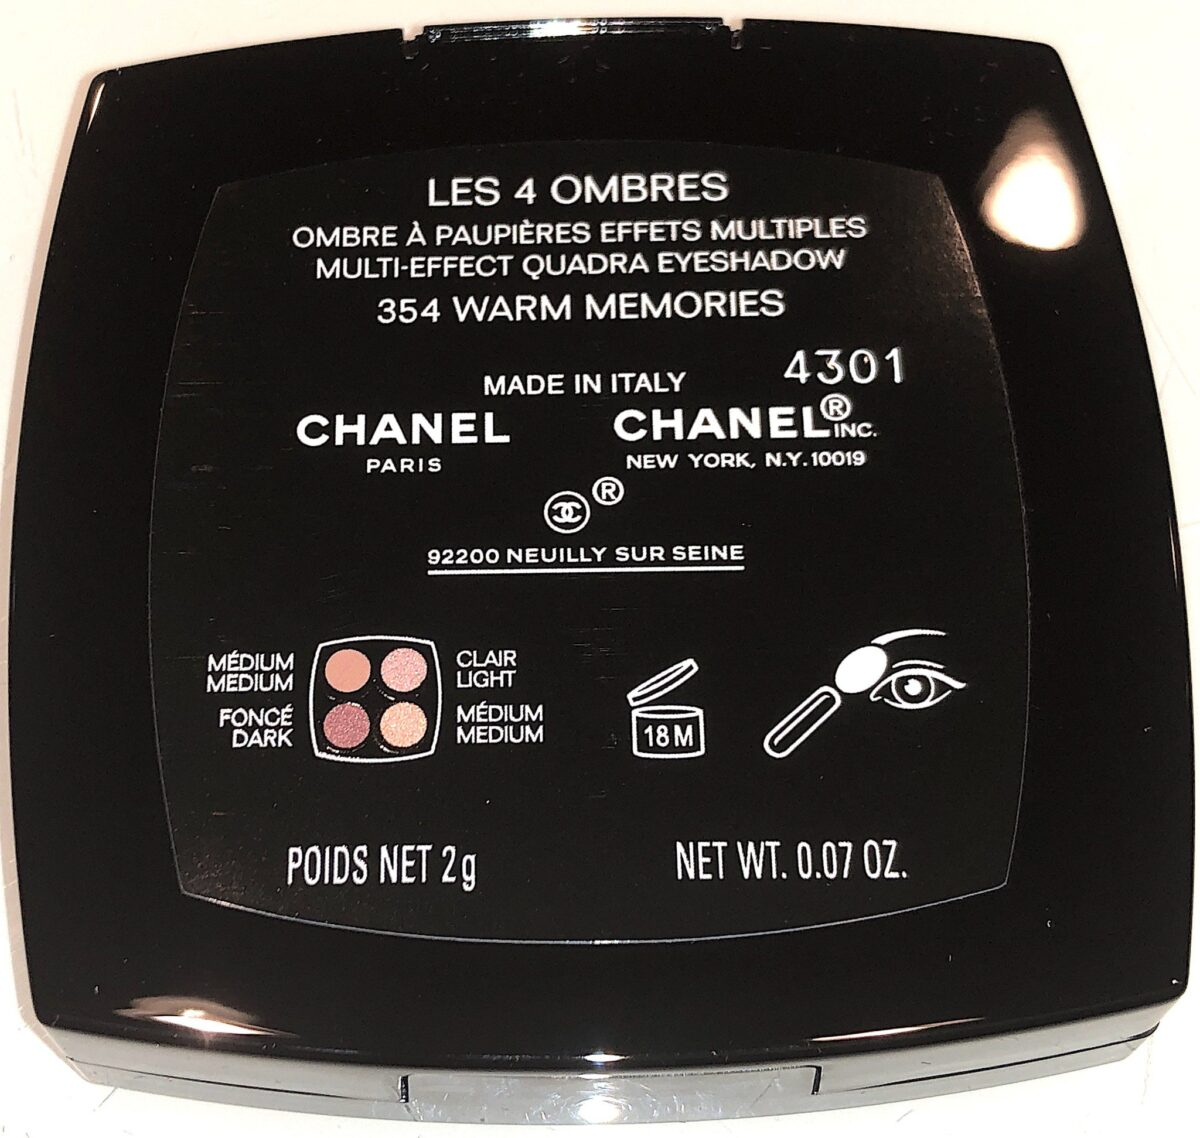 THE BACK OF THECHANEL 354 WARM MEMORIES LES 4 OMBRES PALETTE